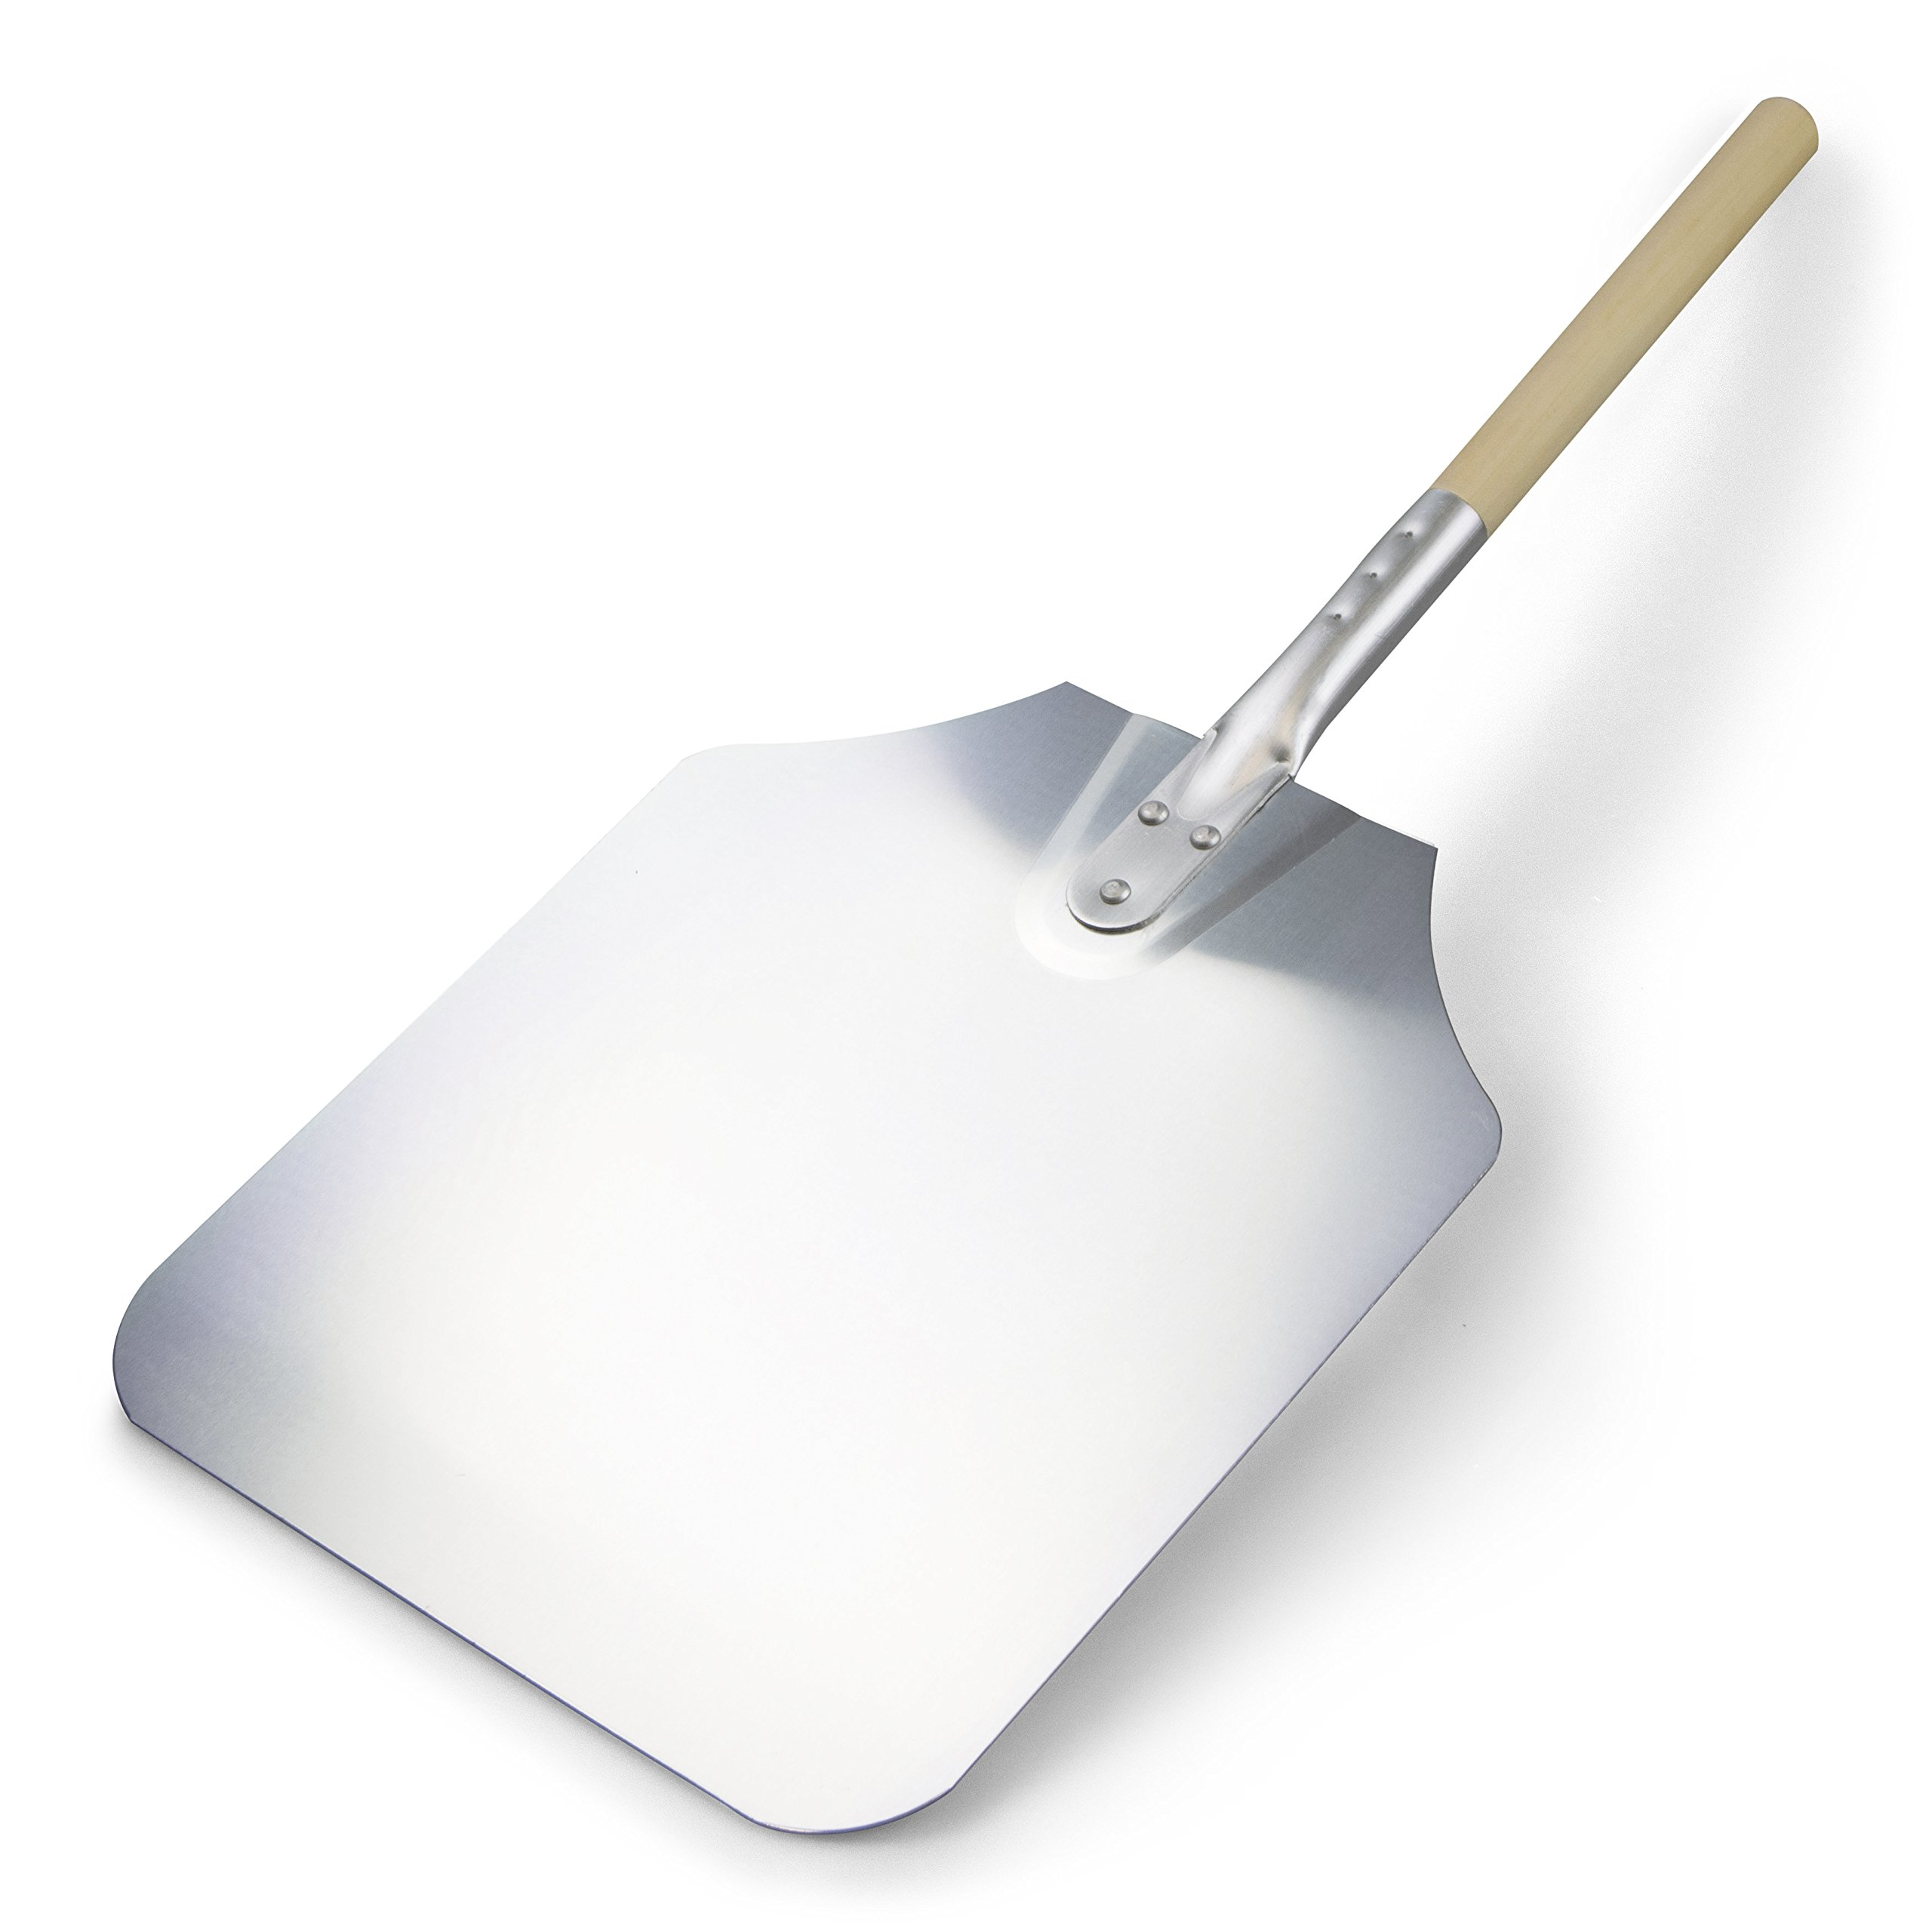 TrueCraftware Reinforced Aluminium Pizza Peel with Wooden Handle and Tapered Edges 12'' x 14'' x 26'' Inches Paddle for Baking Homemade Pizza and Bread